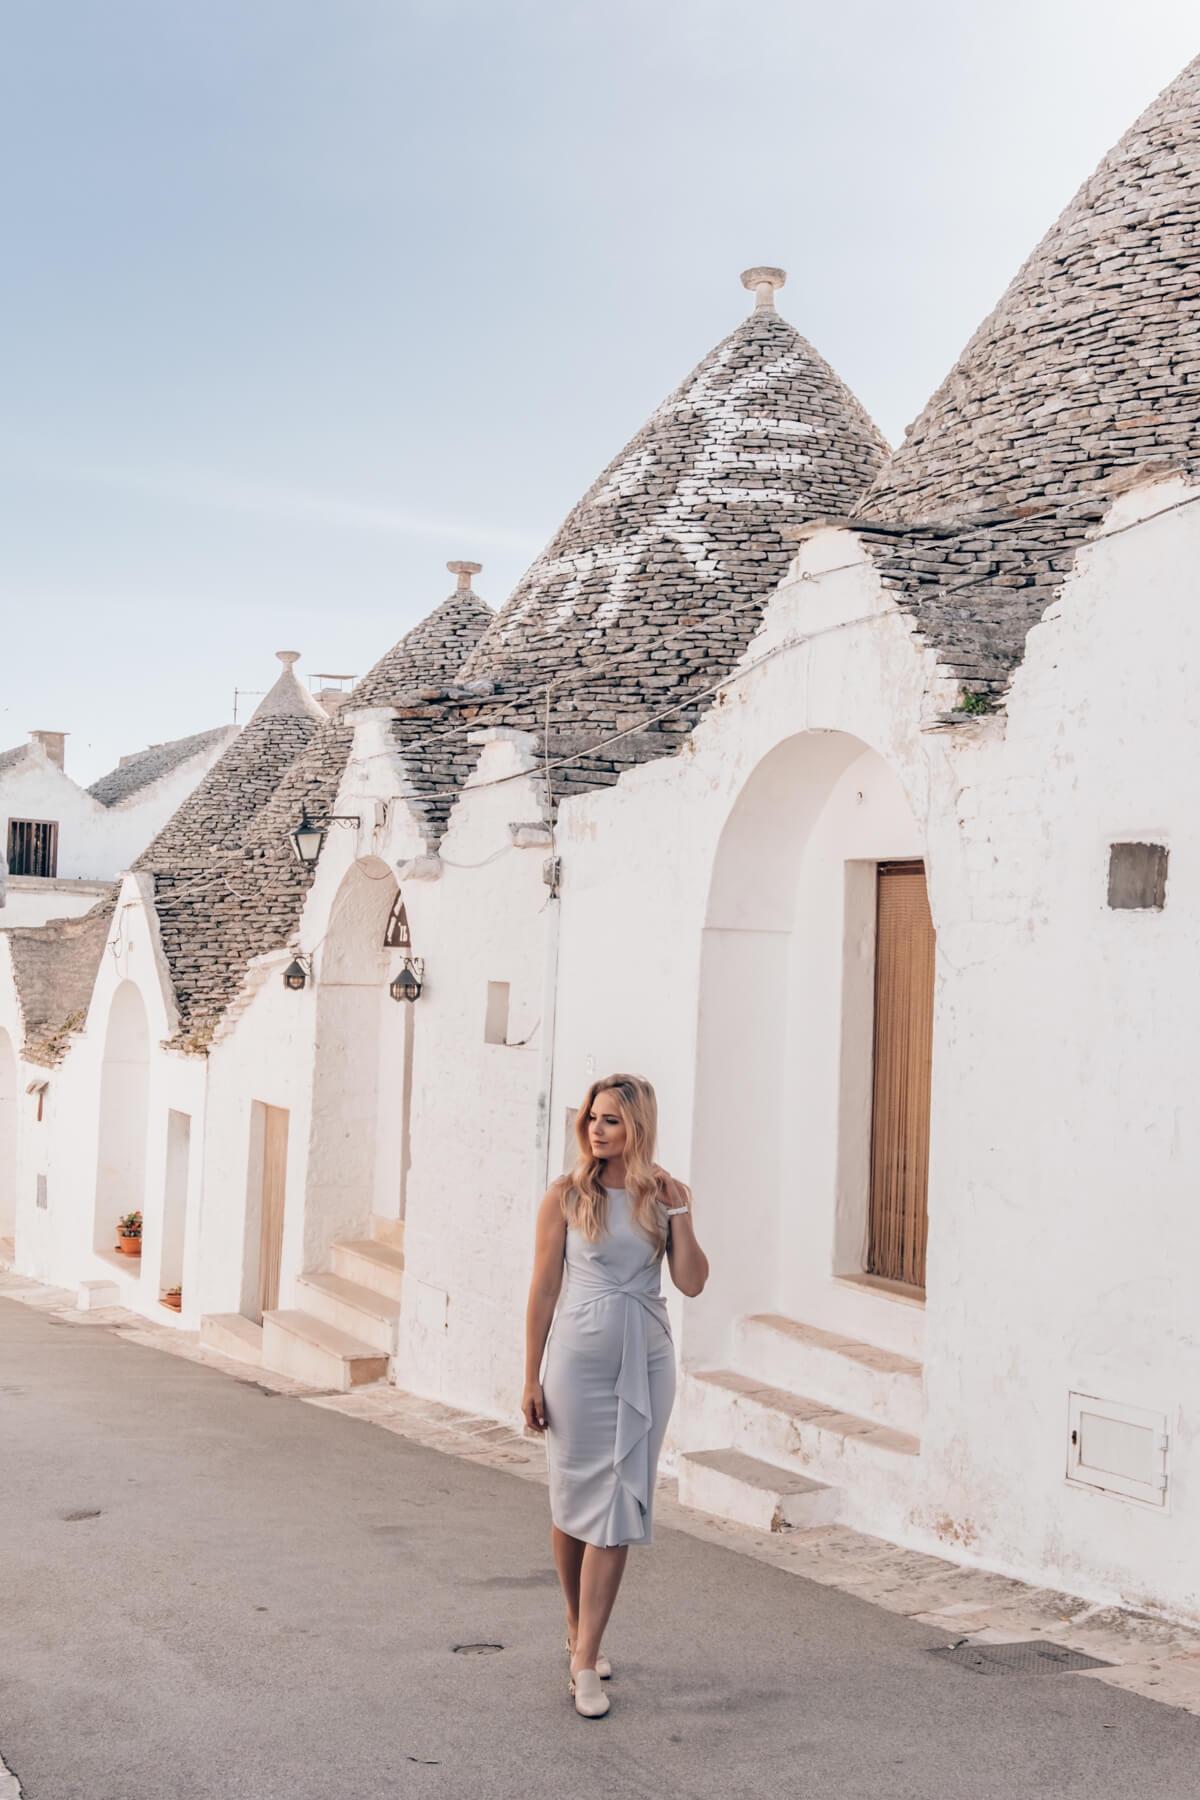 Alberobello travel guide